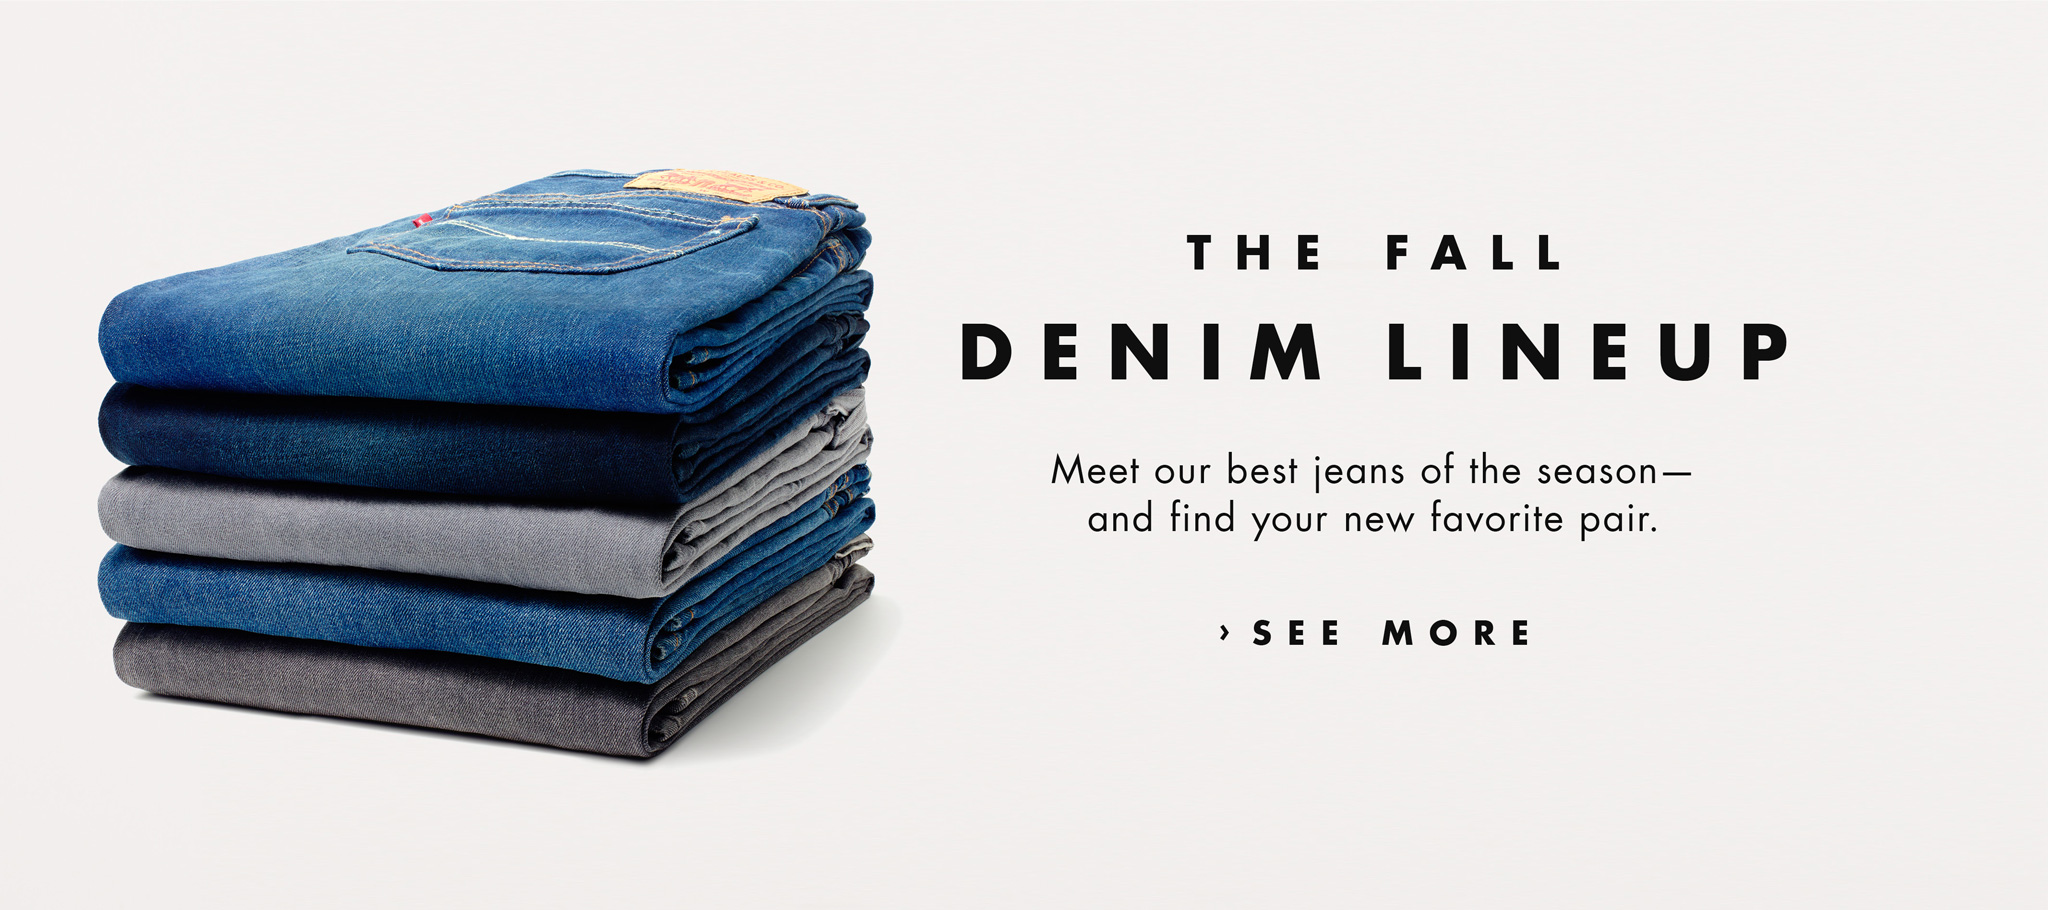 The Fall Denim Lineup